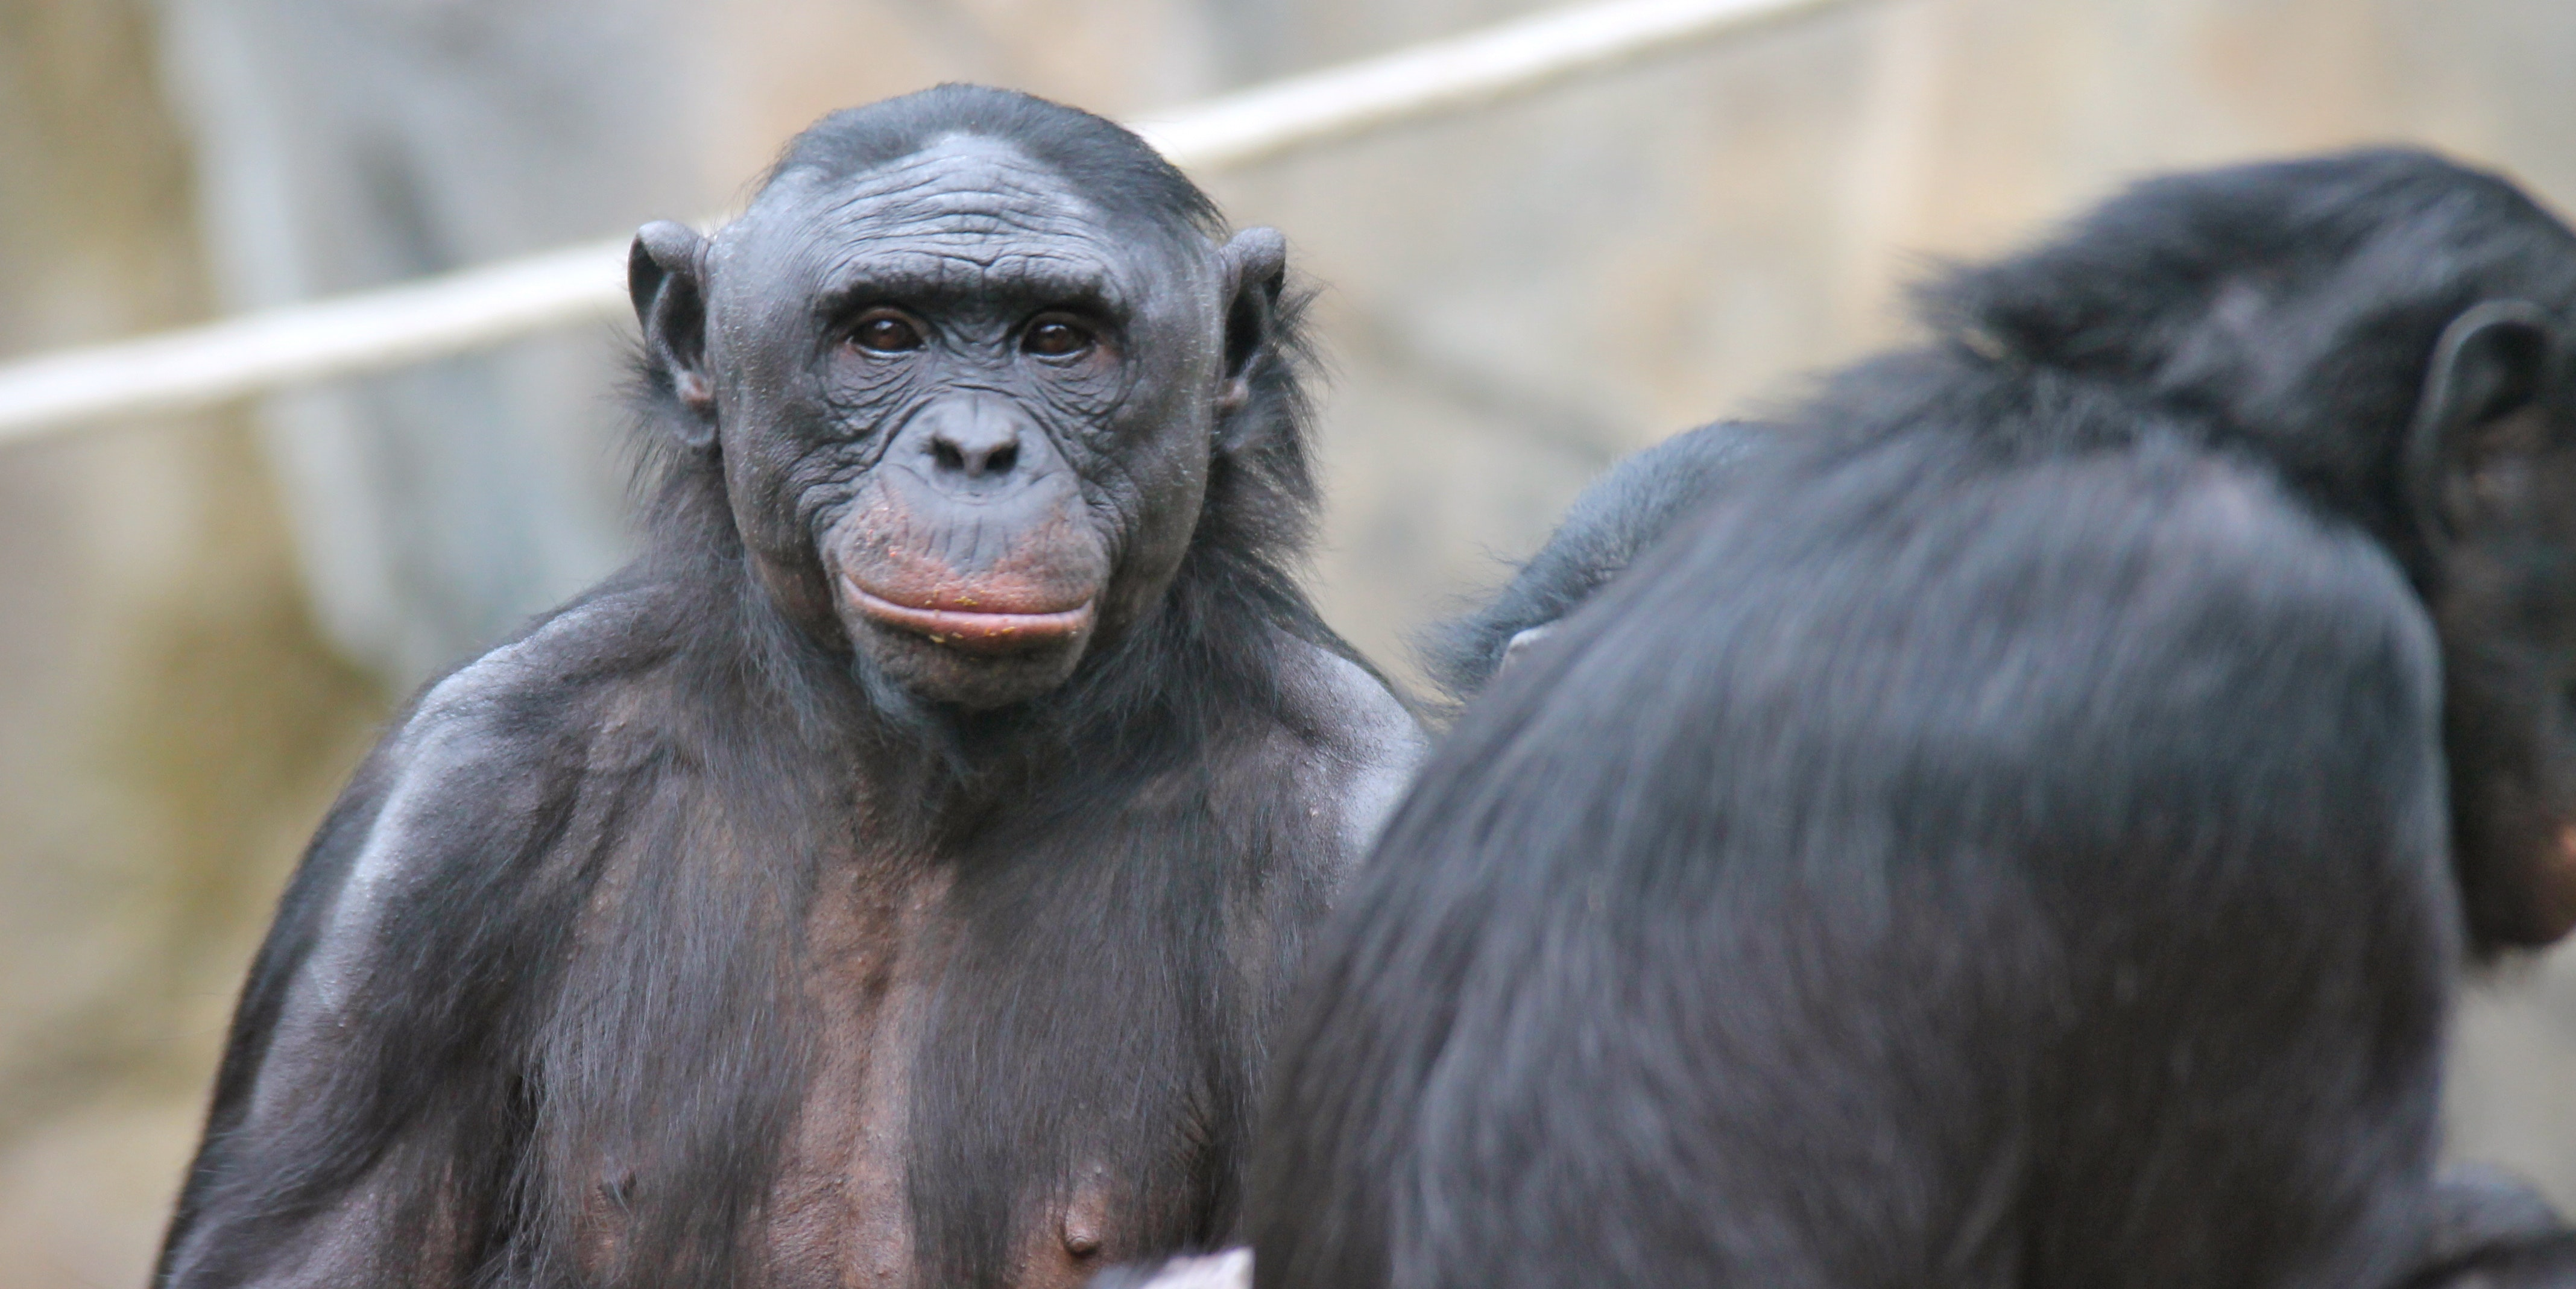 Bonobos, Nicest Primates on the Planet, Make Humans Look Like Monsters